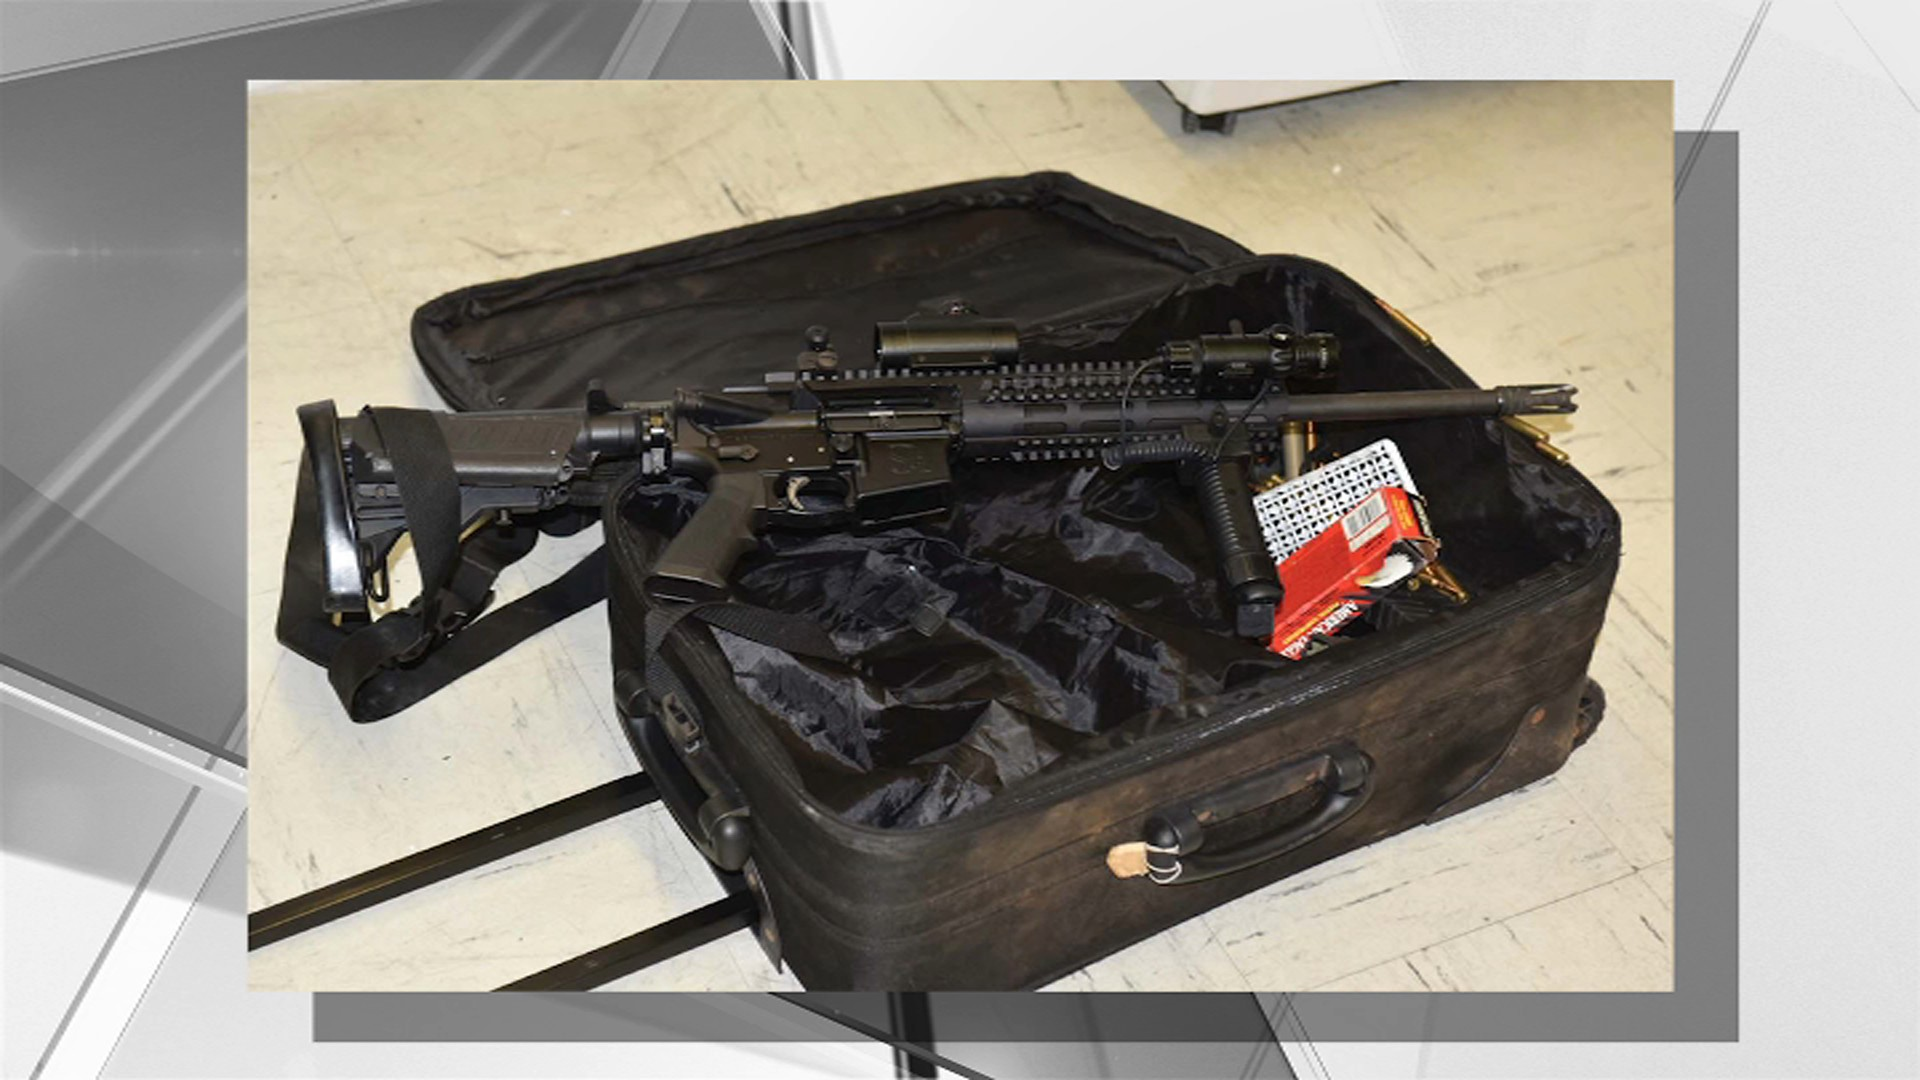 Man Wheels Suitcase With AR-15 Down Street, Throws It at Cop